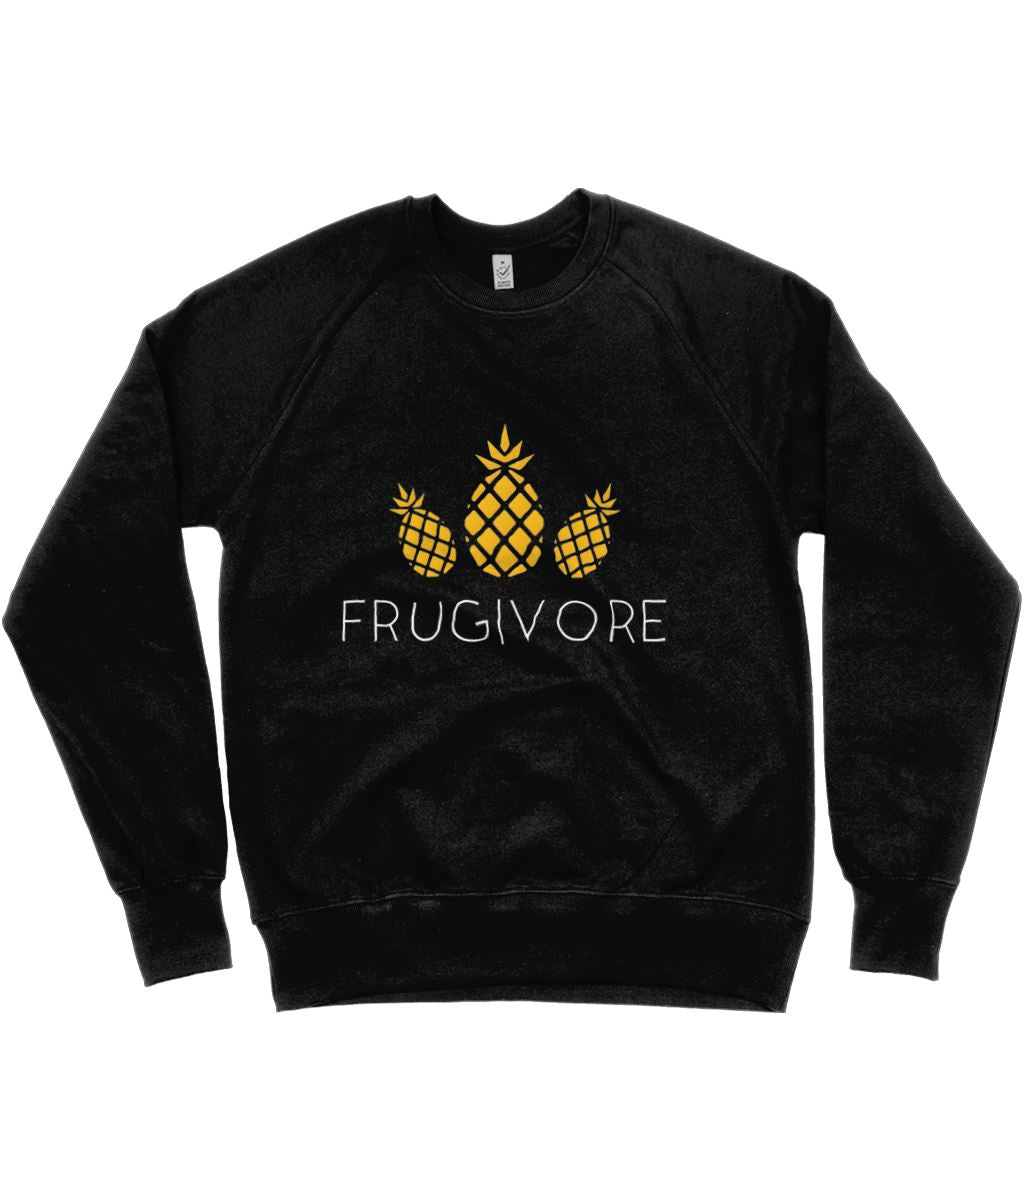 """Frugivore"" Vegan Sweatshirt - 100% Organic Cotton (Unisex) Clothing Vegan Original Black Small"